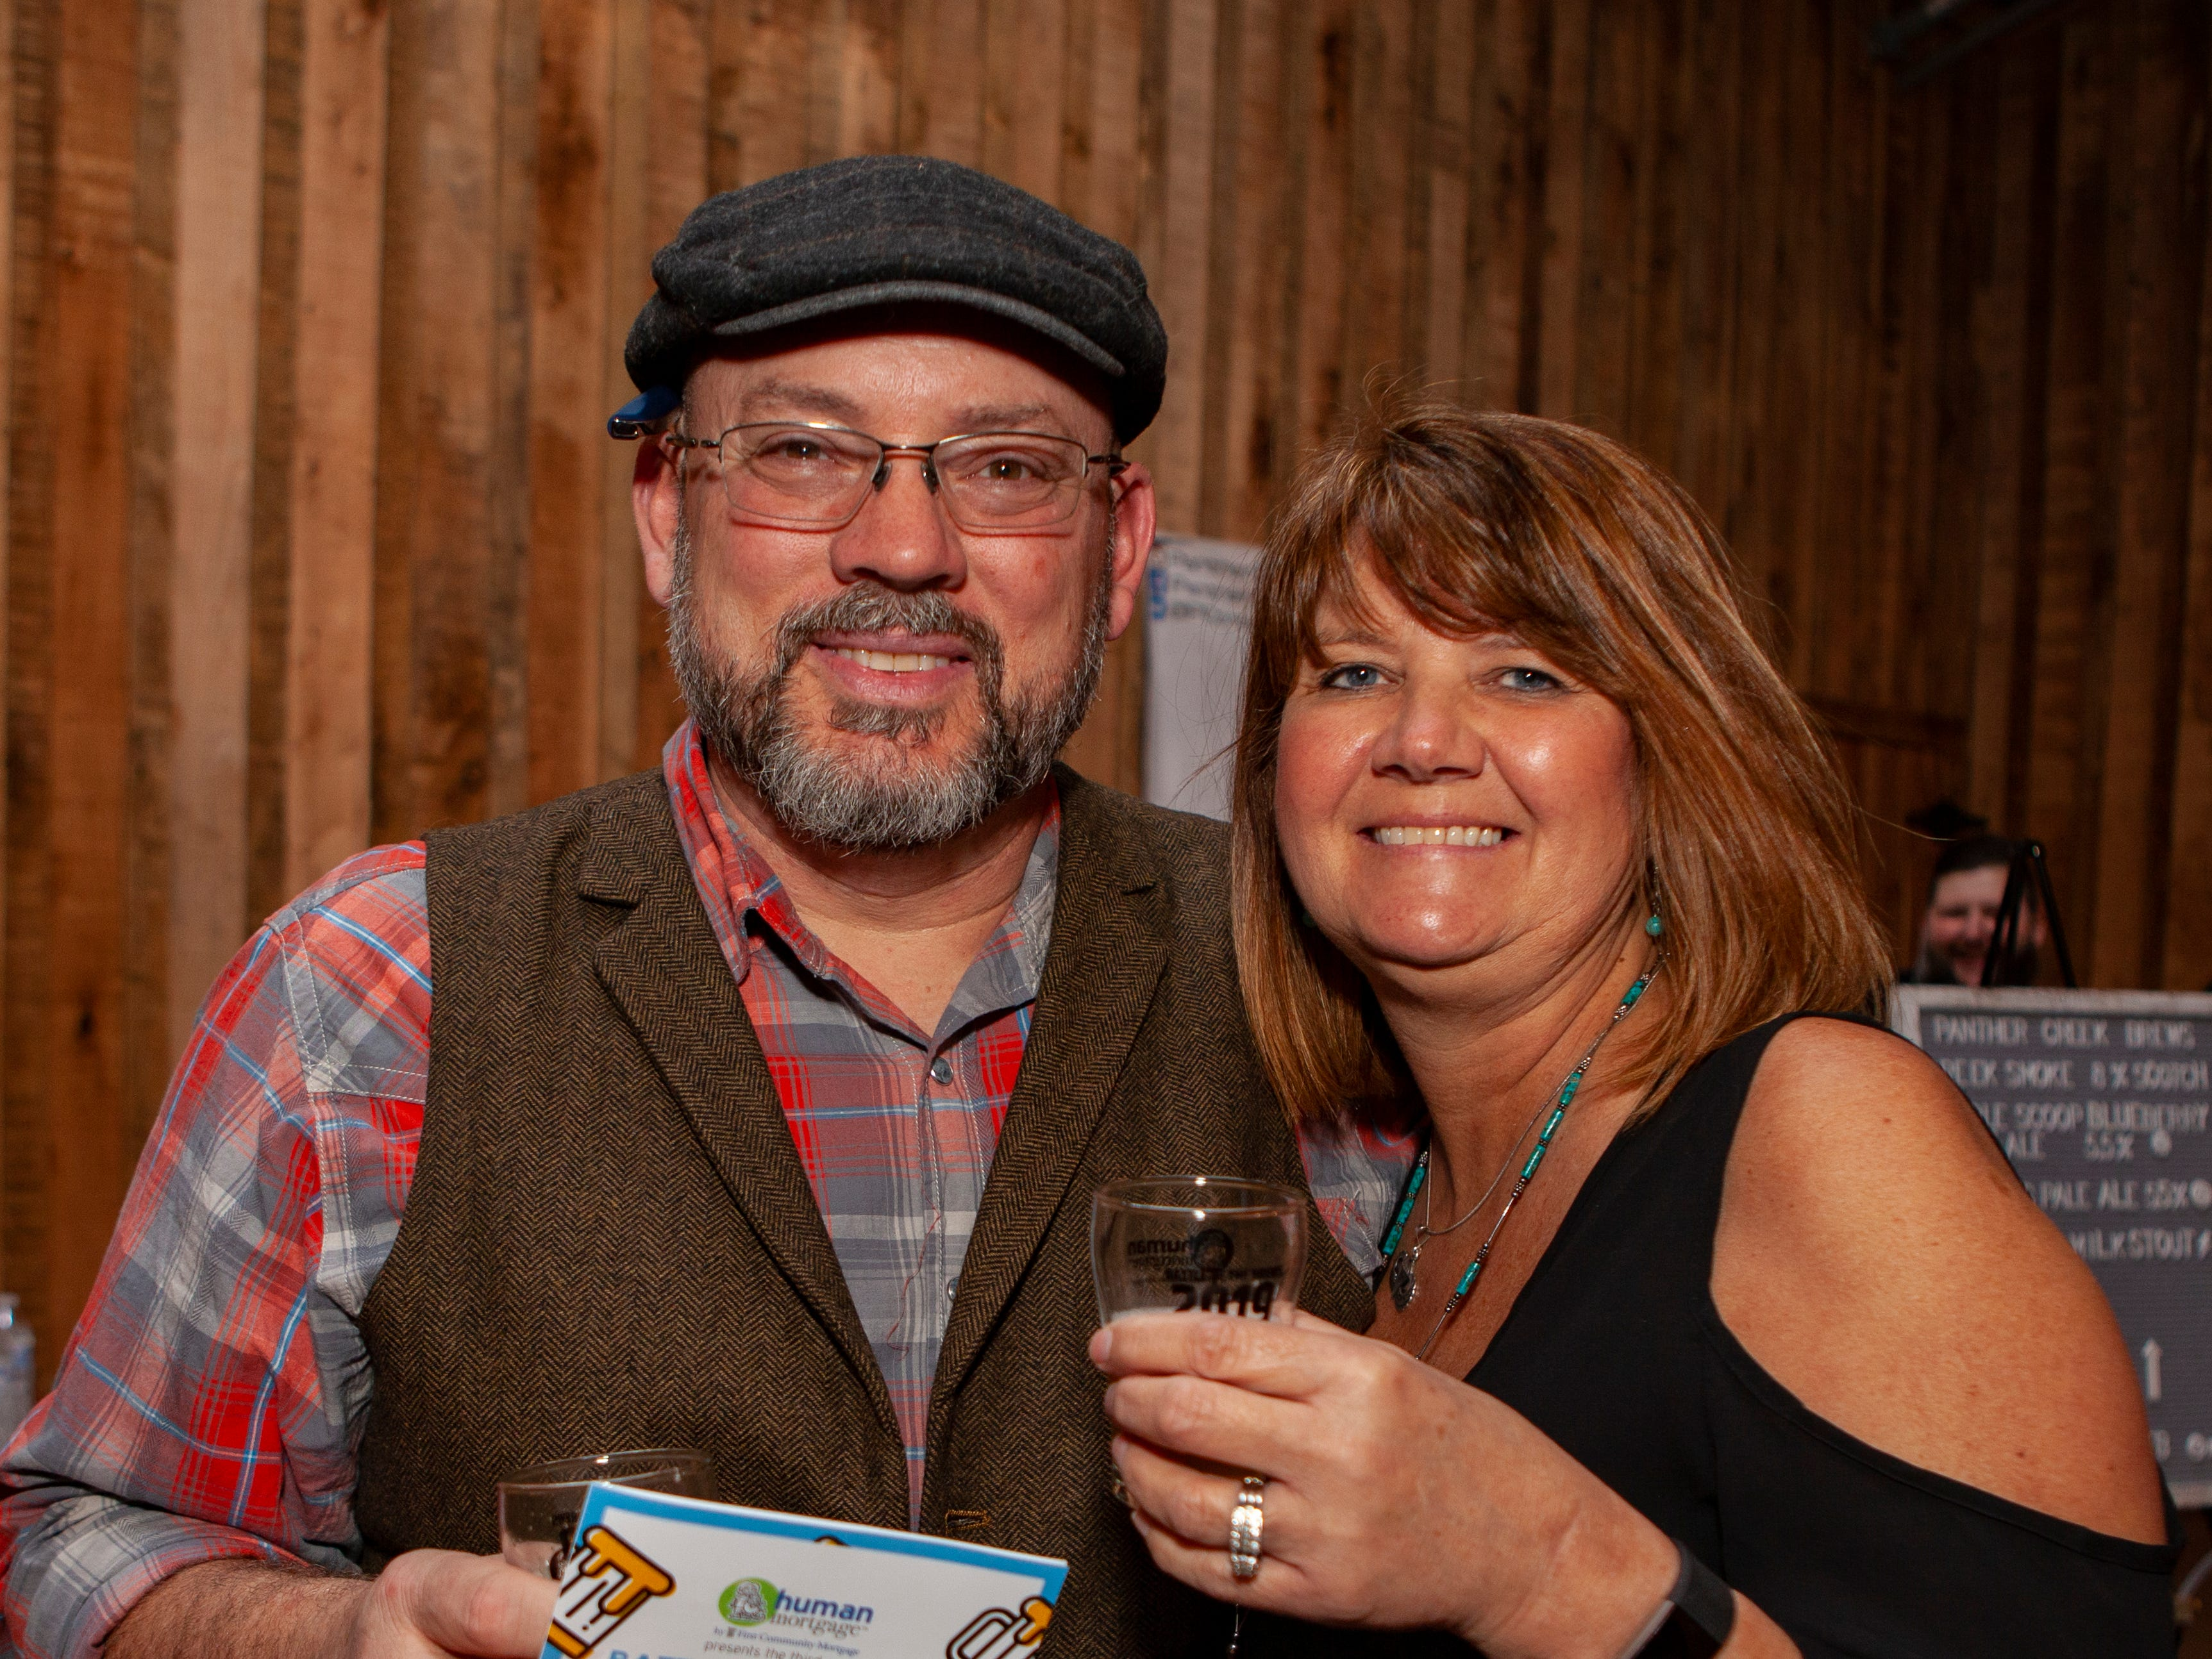 James and Diana Corson at the third annual Battle of the Brews, a benefit for Kymari House Inc., held Saturday, Feb. 9, 2019 at The Grove at Williamson Place in Murfreesboro.